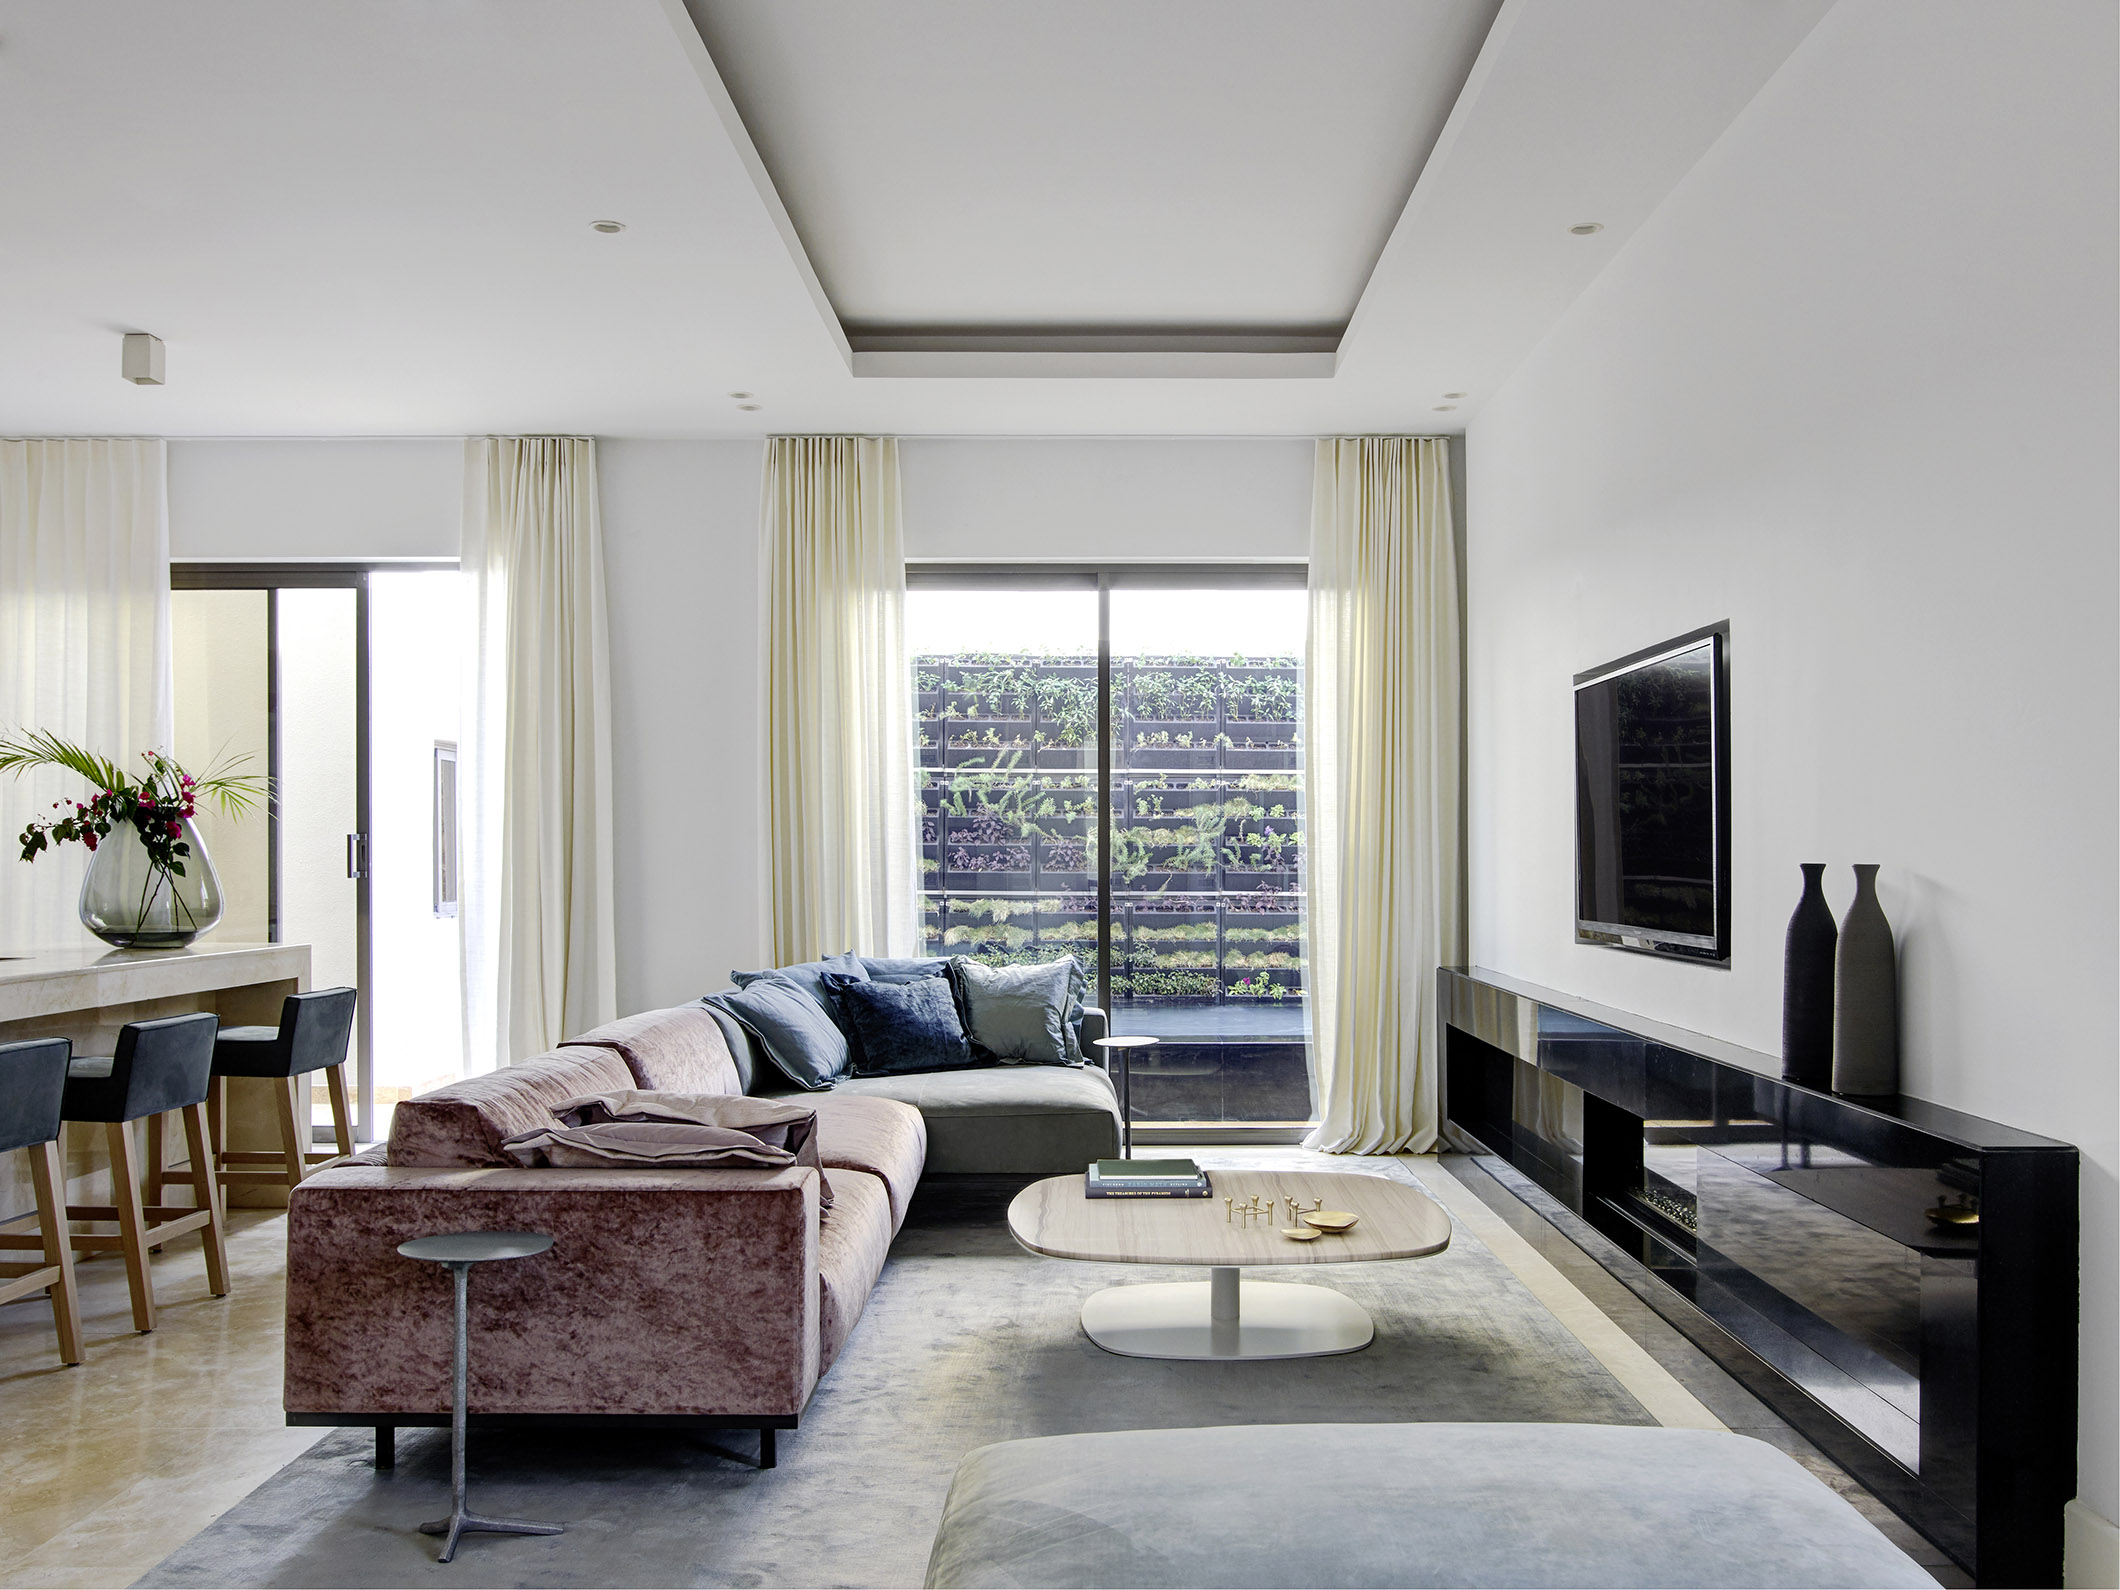 Jaweher Villas Riyadh with DON sofa and pouf, SAAR bar stool, KEK coffee table and KLINK side table